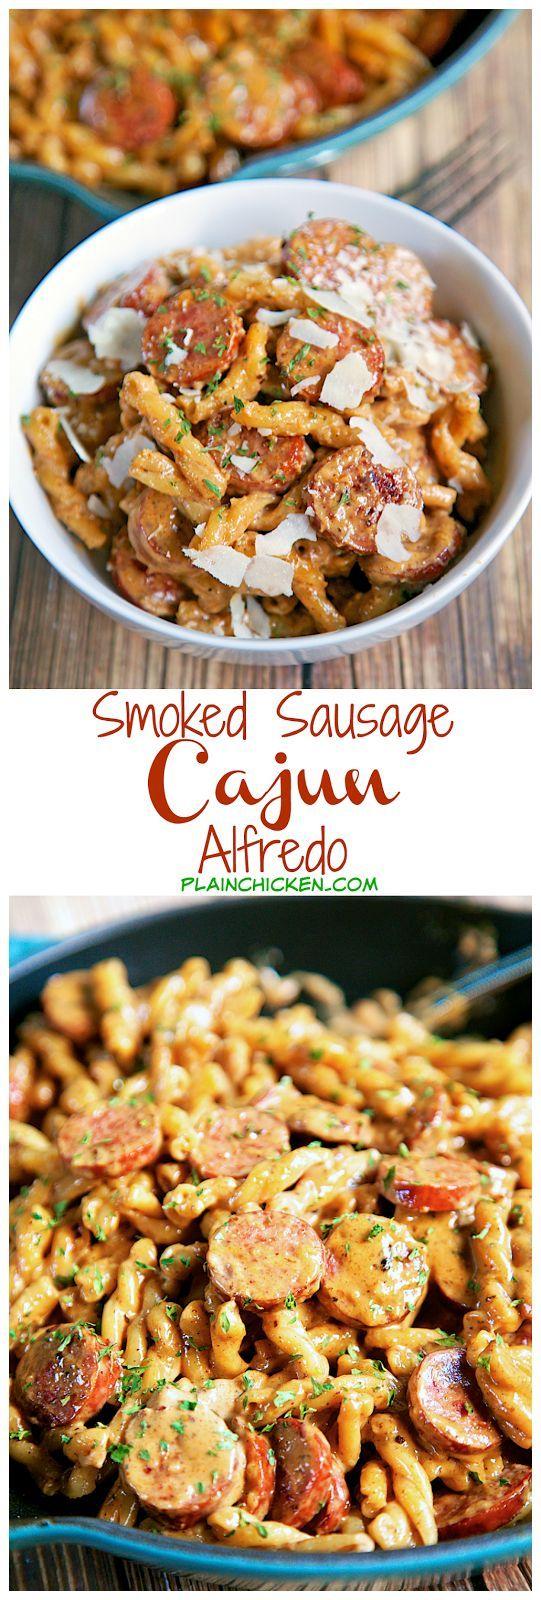 Smoked Sausage Cajun Alfredo - Only 5 ingredients - smoked sausage, pasta, cajun seasoning, heavy cream and parmesan - ready in under 15 minutes! No prep! Very similar to our all-time favorite Chicken Lazone, but with smoked sausage. OMG! AMAZING! Make th